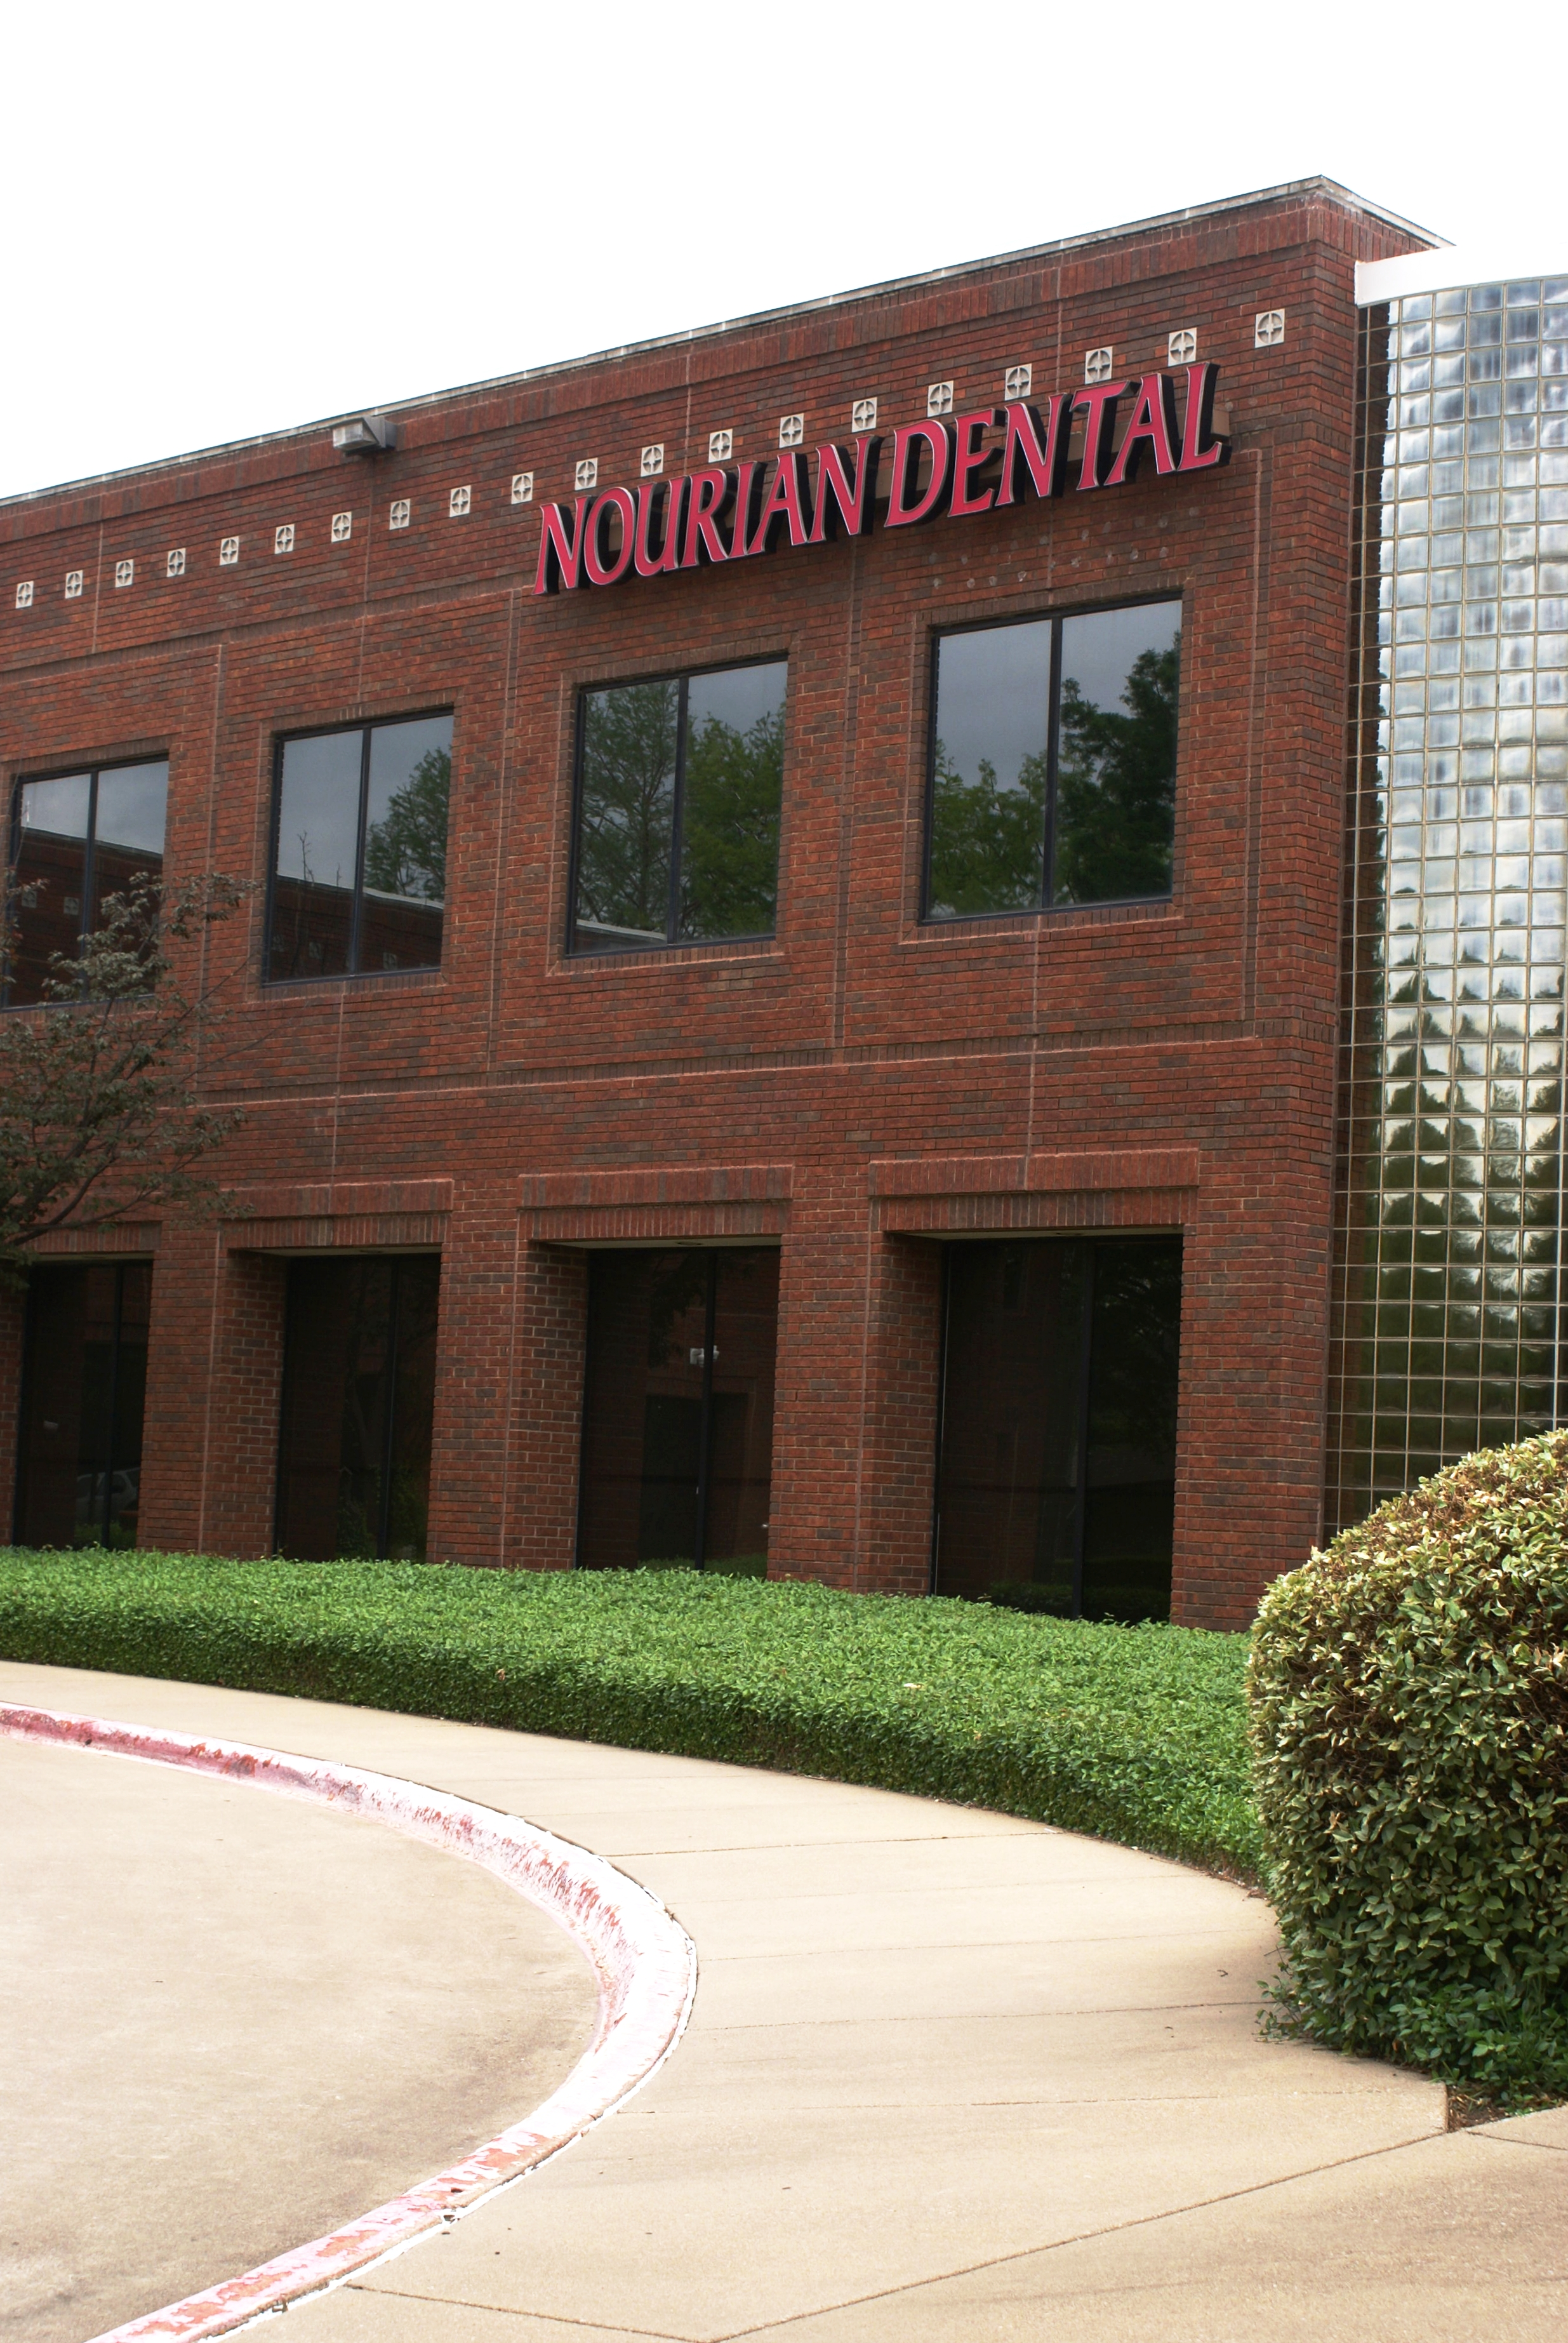 Who Are We? - Established in 1997.Conveniently located in North Dallas, Nourian Dental has been opened since 1997. Our practice has been around for over 20 years.Outstanding, compassionate care, where patients become family. Ours is a practice of honesty and integrity, we give our absolute best. We treat you like family.